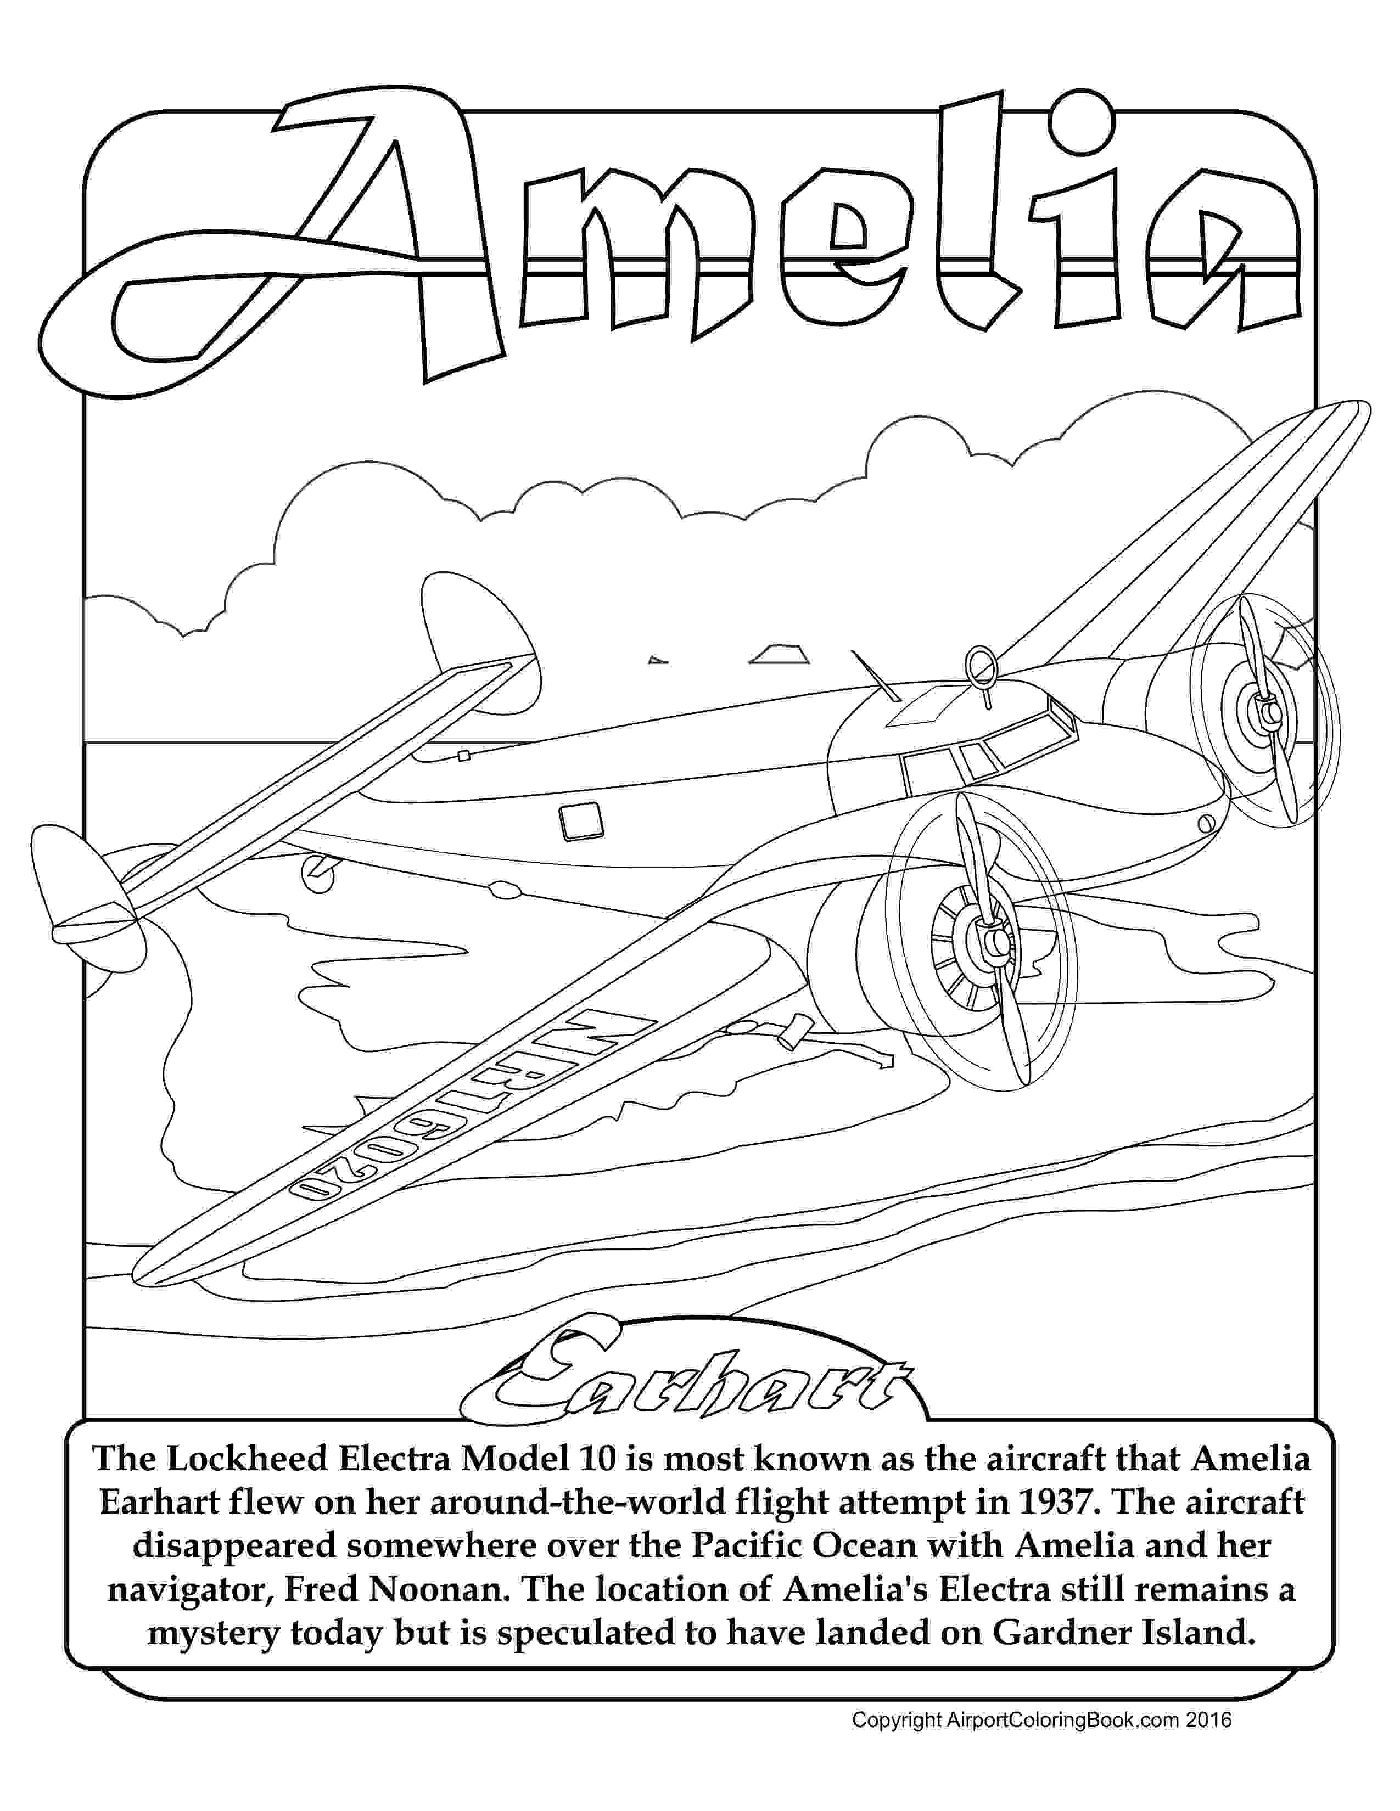 amelia earhart coloring pages amelia earhart modern history coloring book pinterest earhart coloring amelia pages